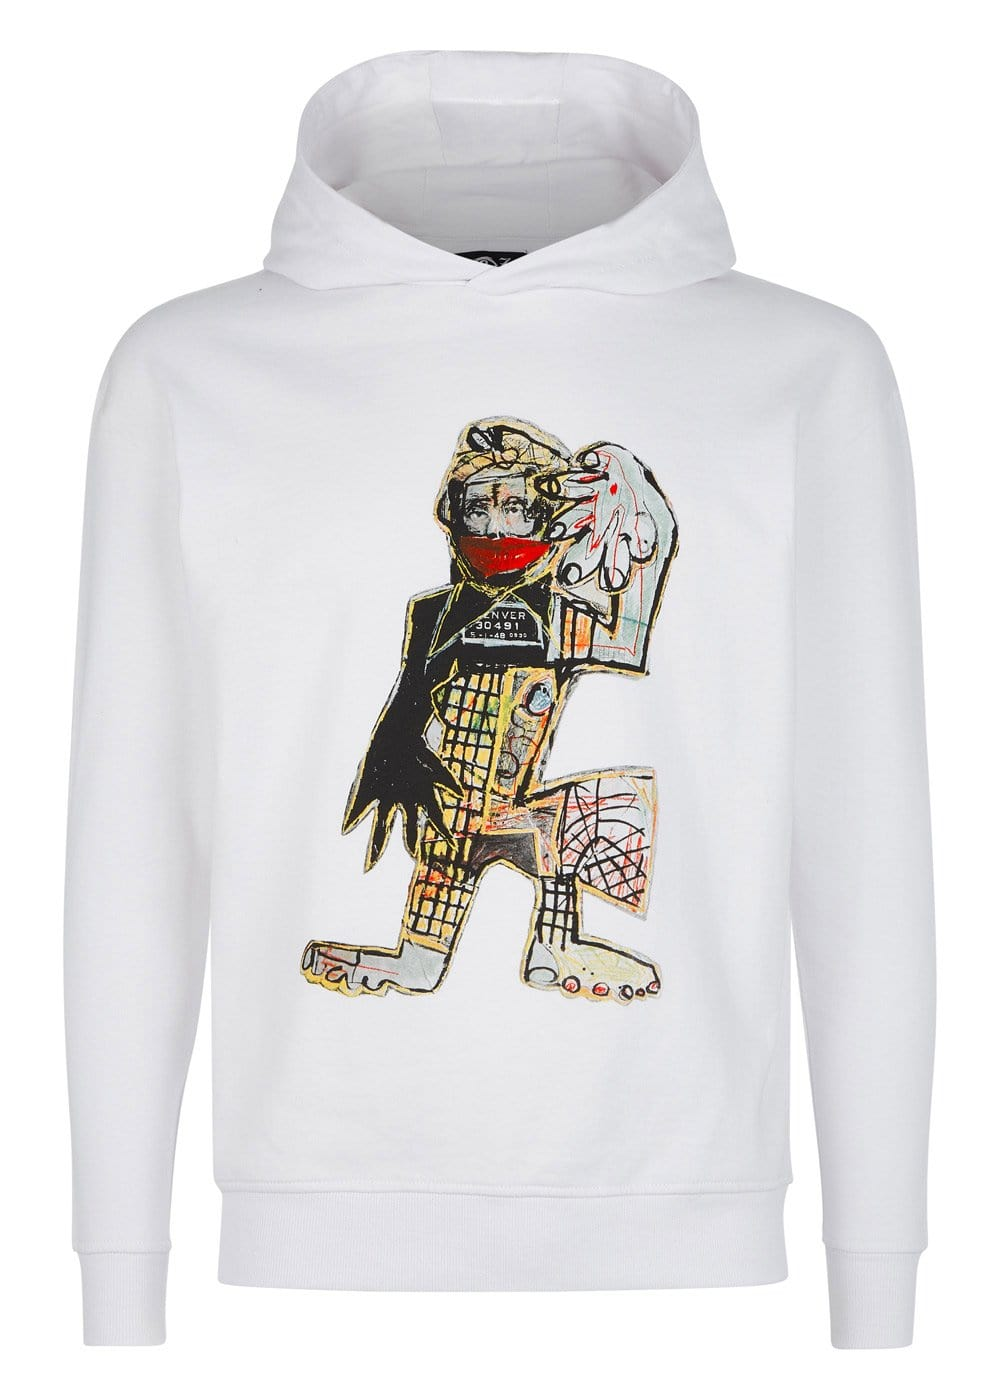 TeenzShop Youth Boys David King Reuben Graphic Hoodie